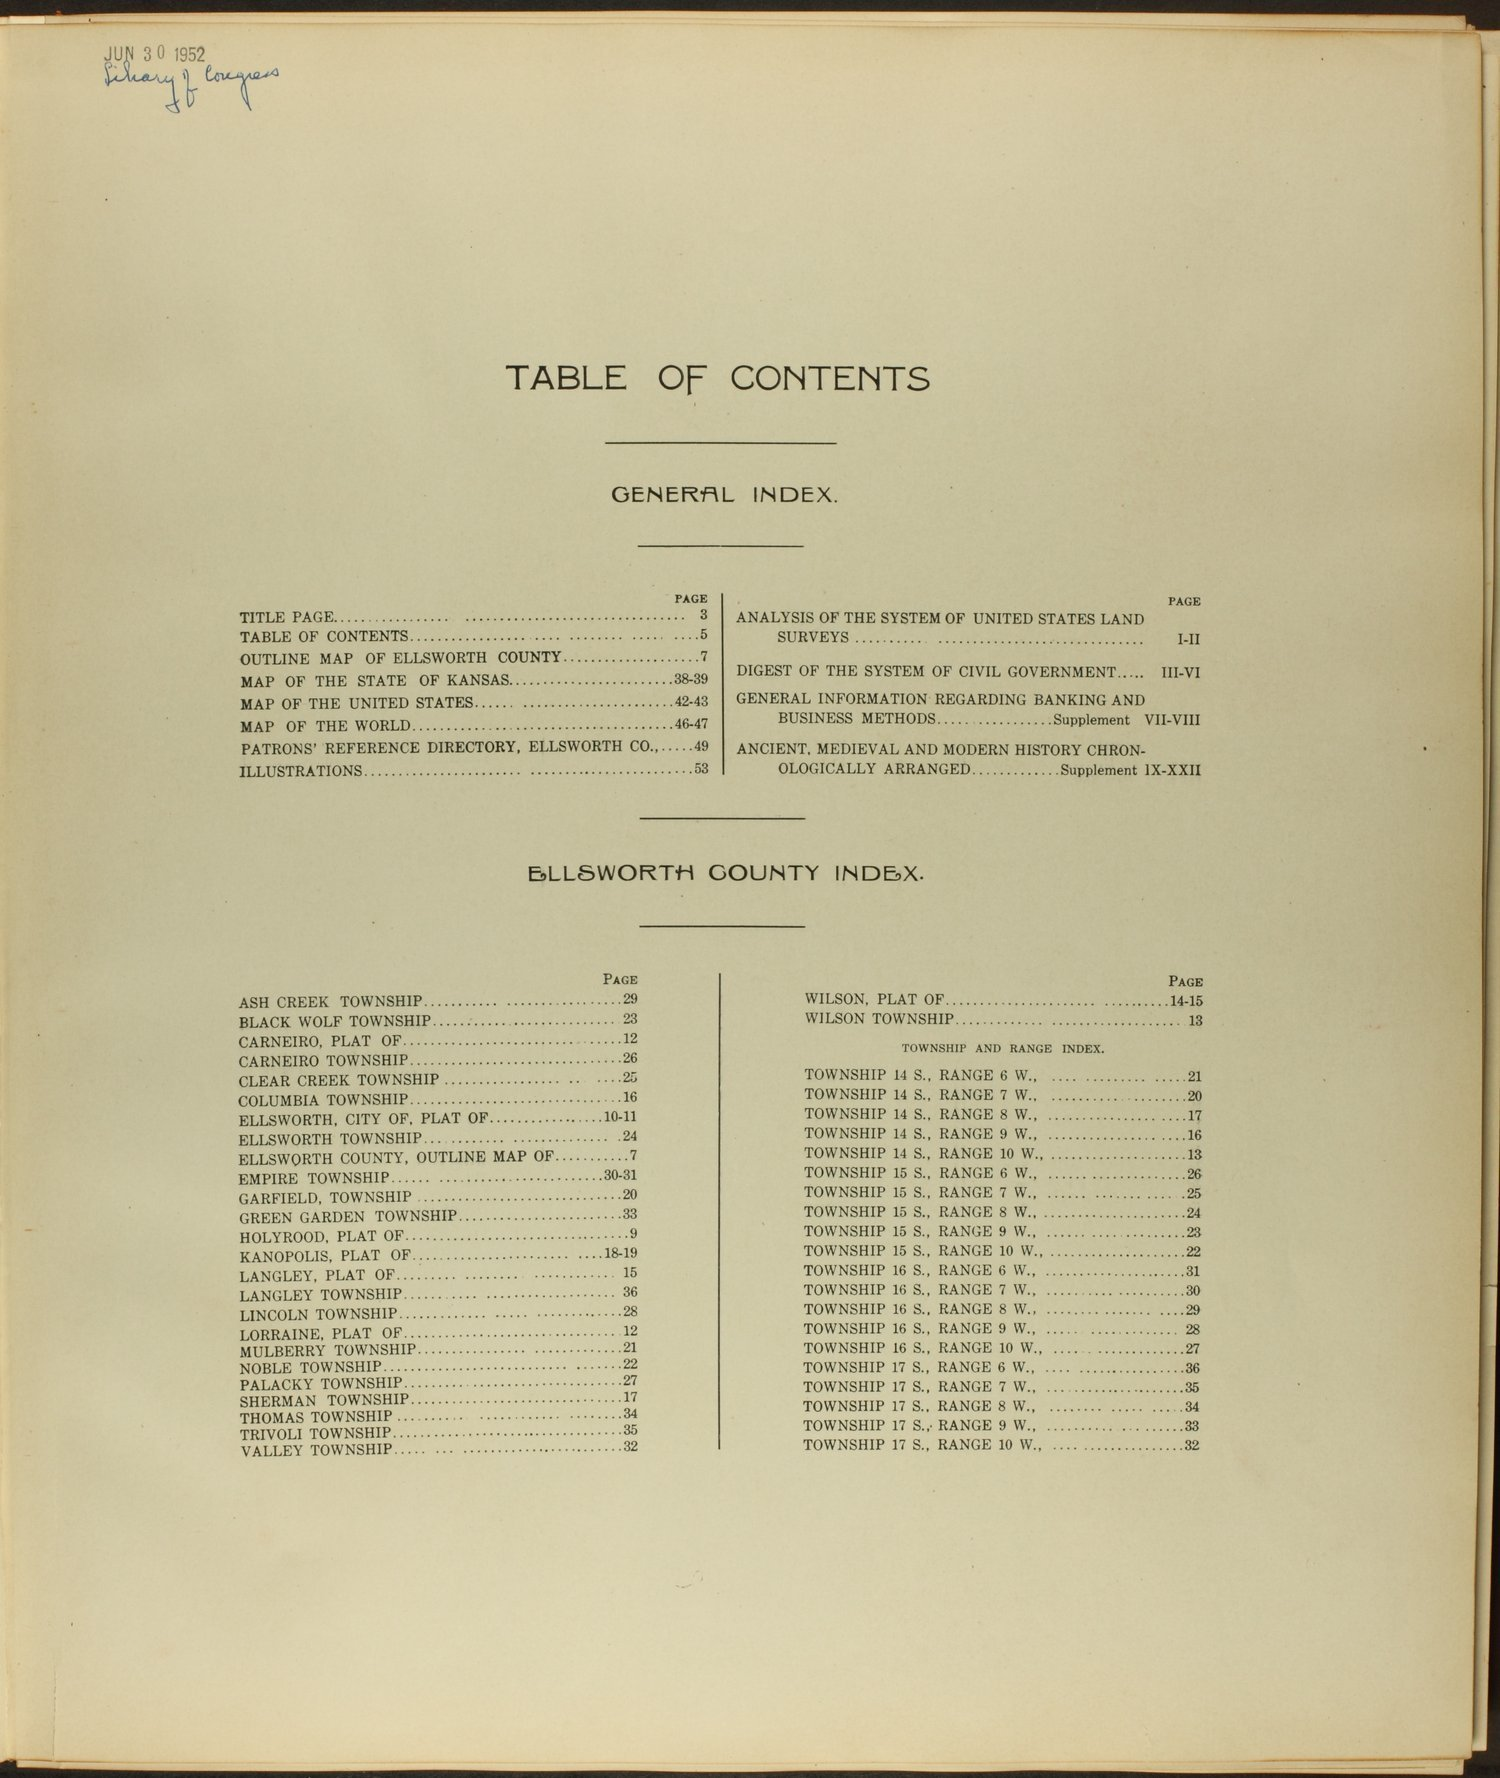 Standard atlas of Ellsworth County, Kansas - Table of Contents